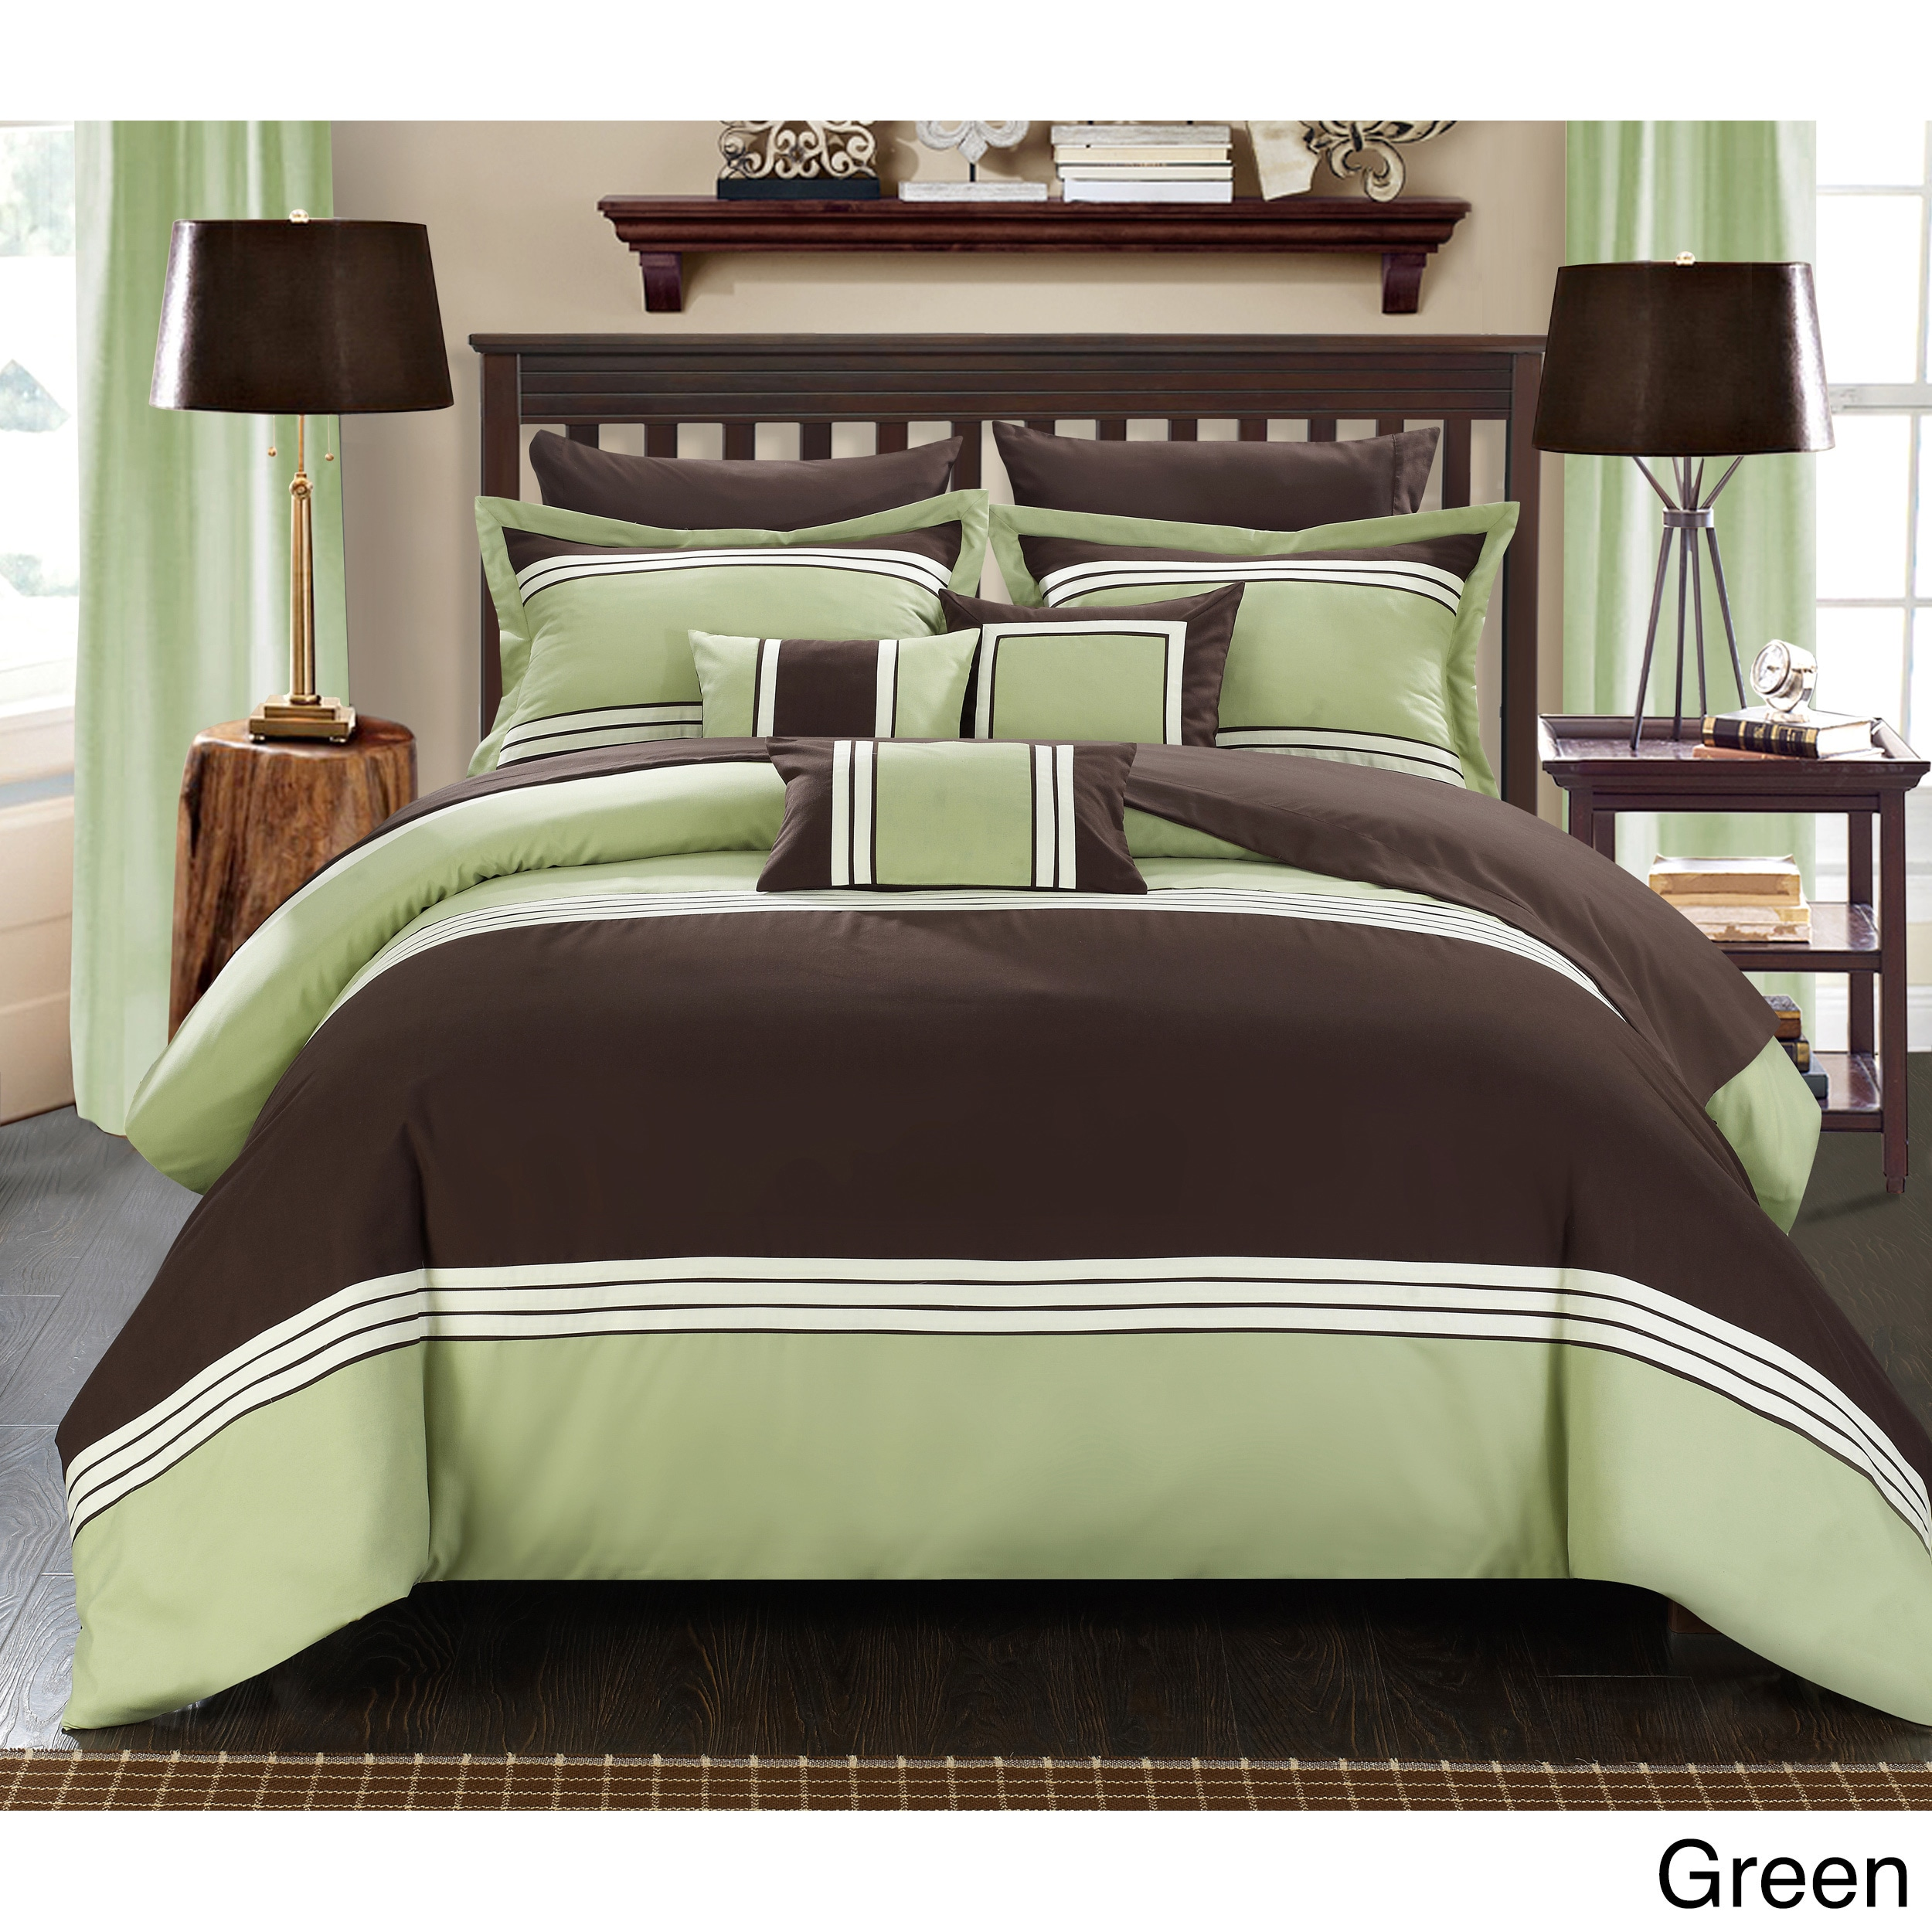 Green Comforter Sets For Less